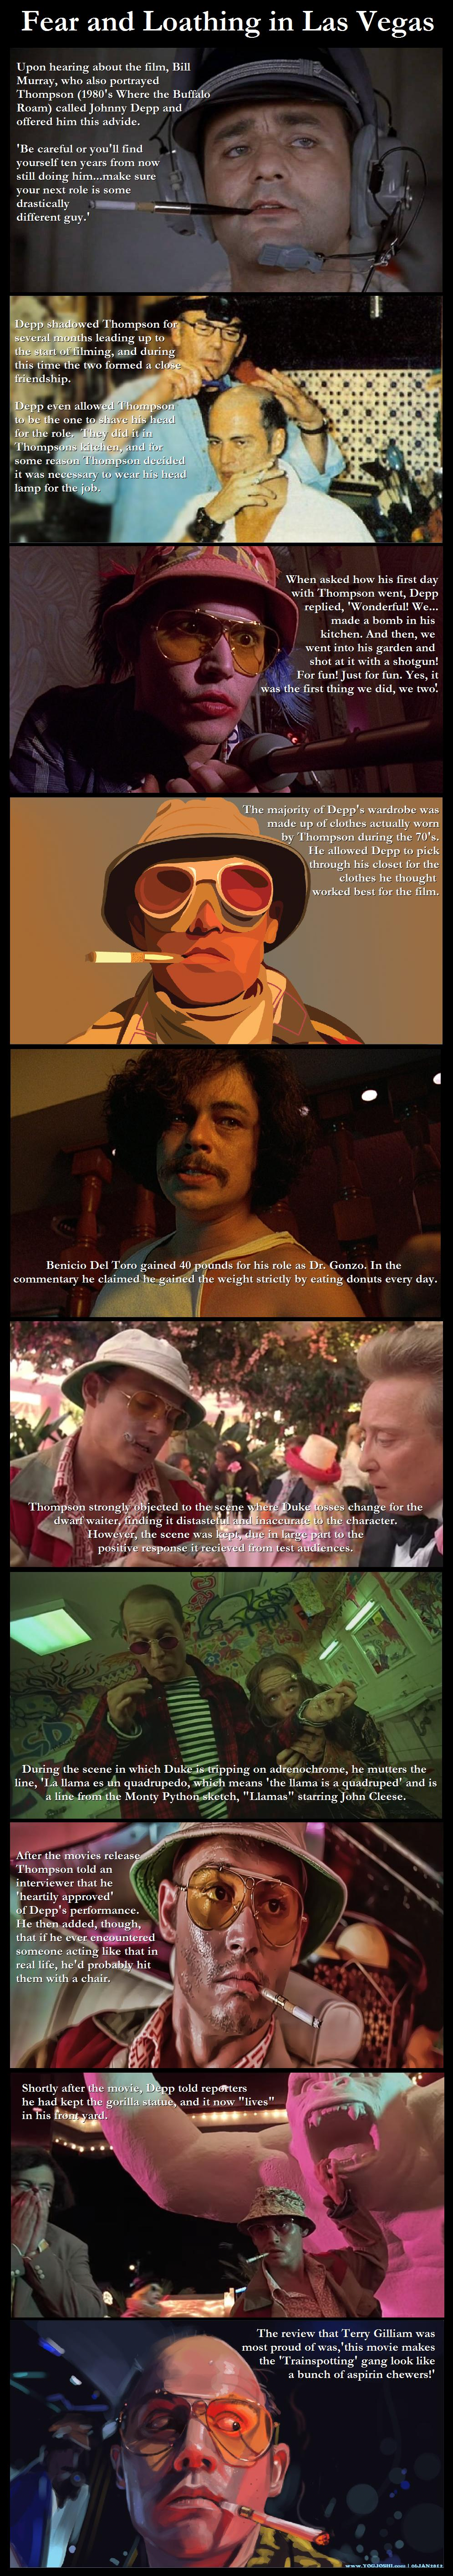 In adrenochrome vegas quotes and fear las loathing Amyls Analysis